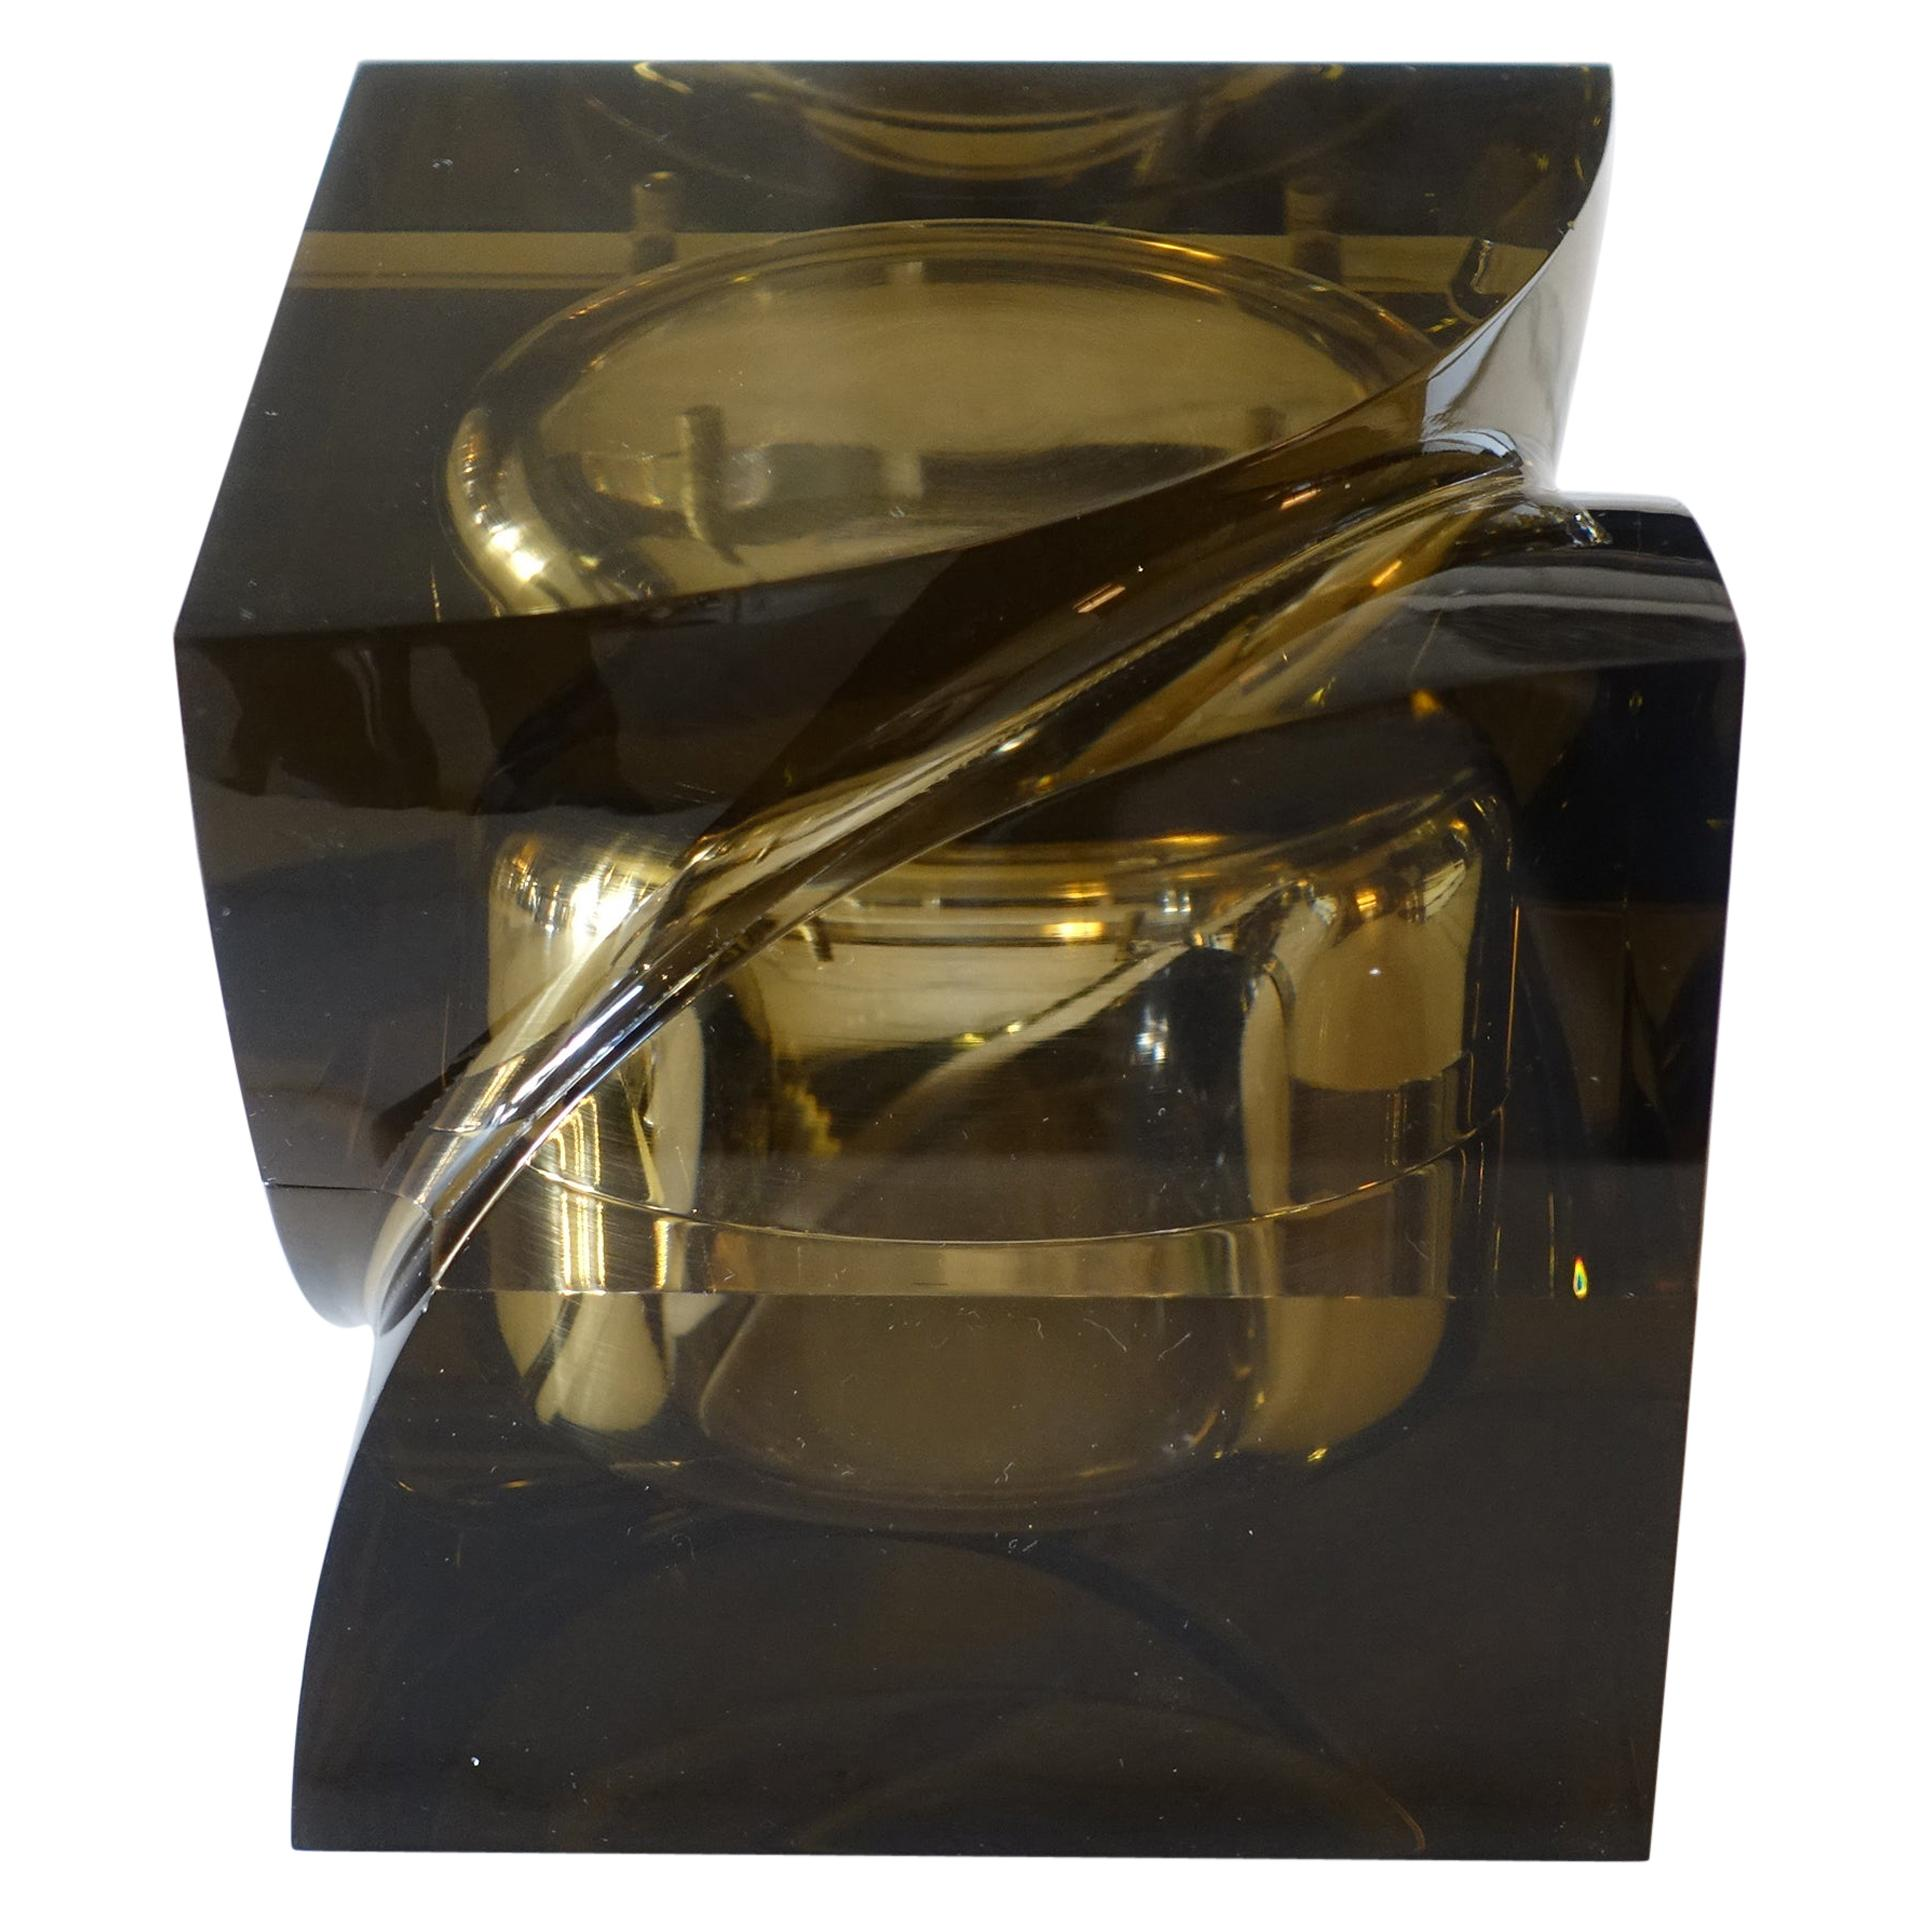 Flair Edition Small Decorative Box in Amber Lucite, Italy, 2021